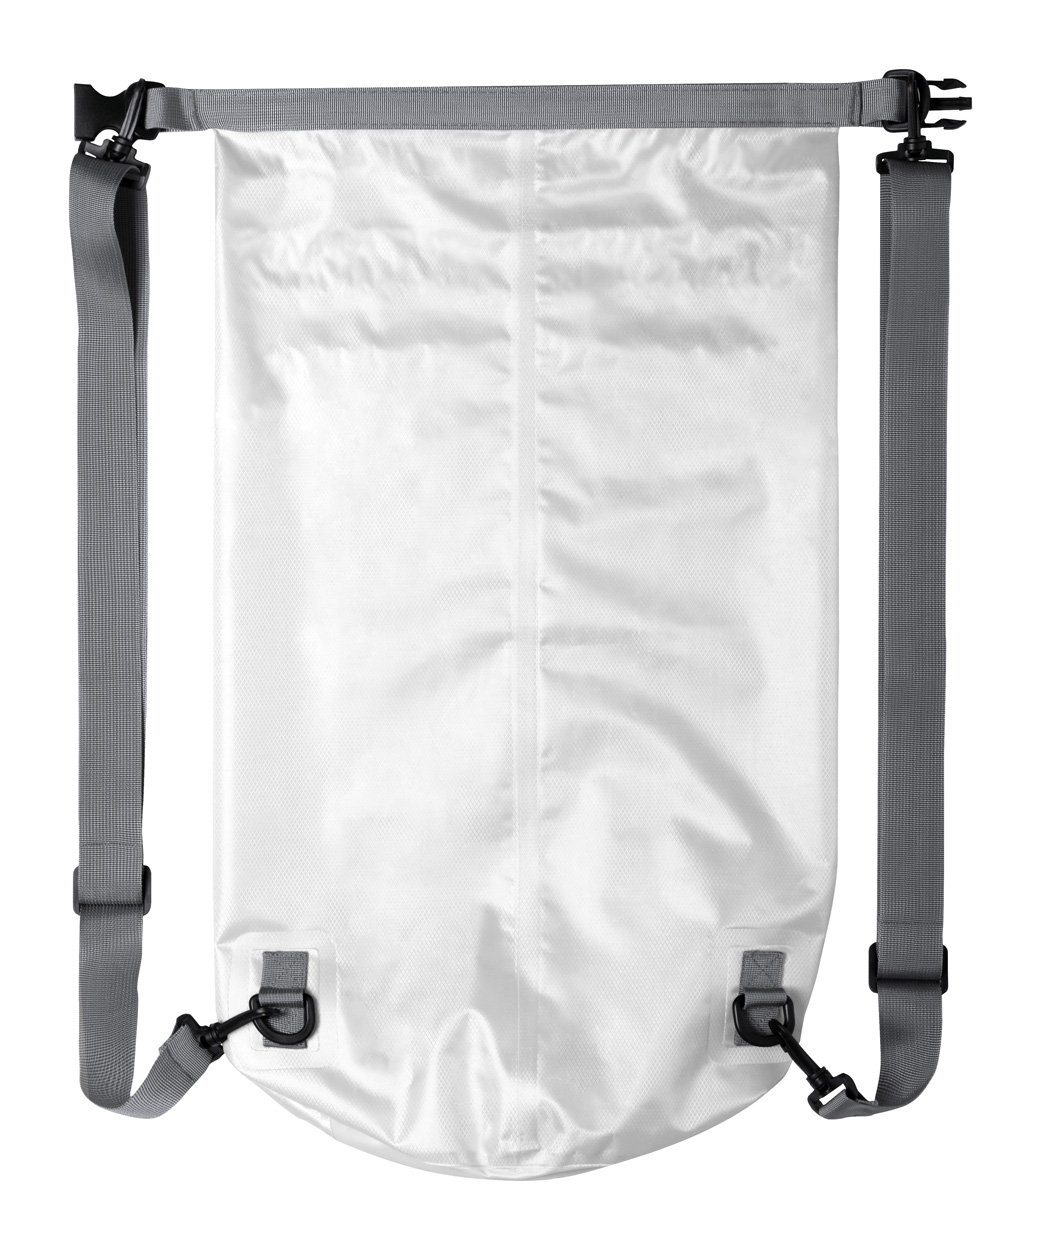 Tayrux dry bag backpack